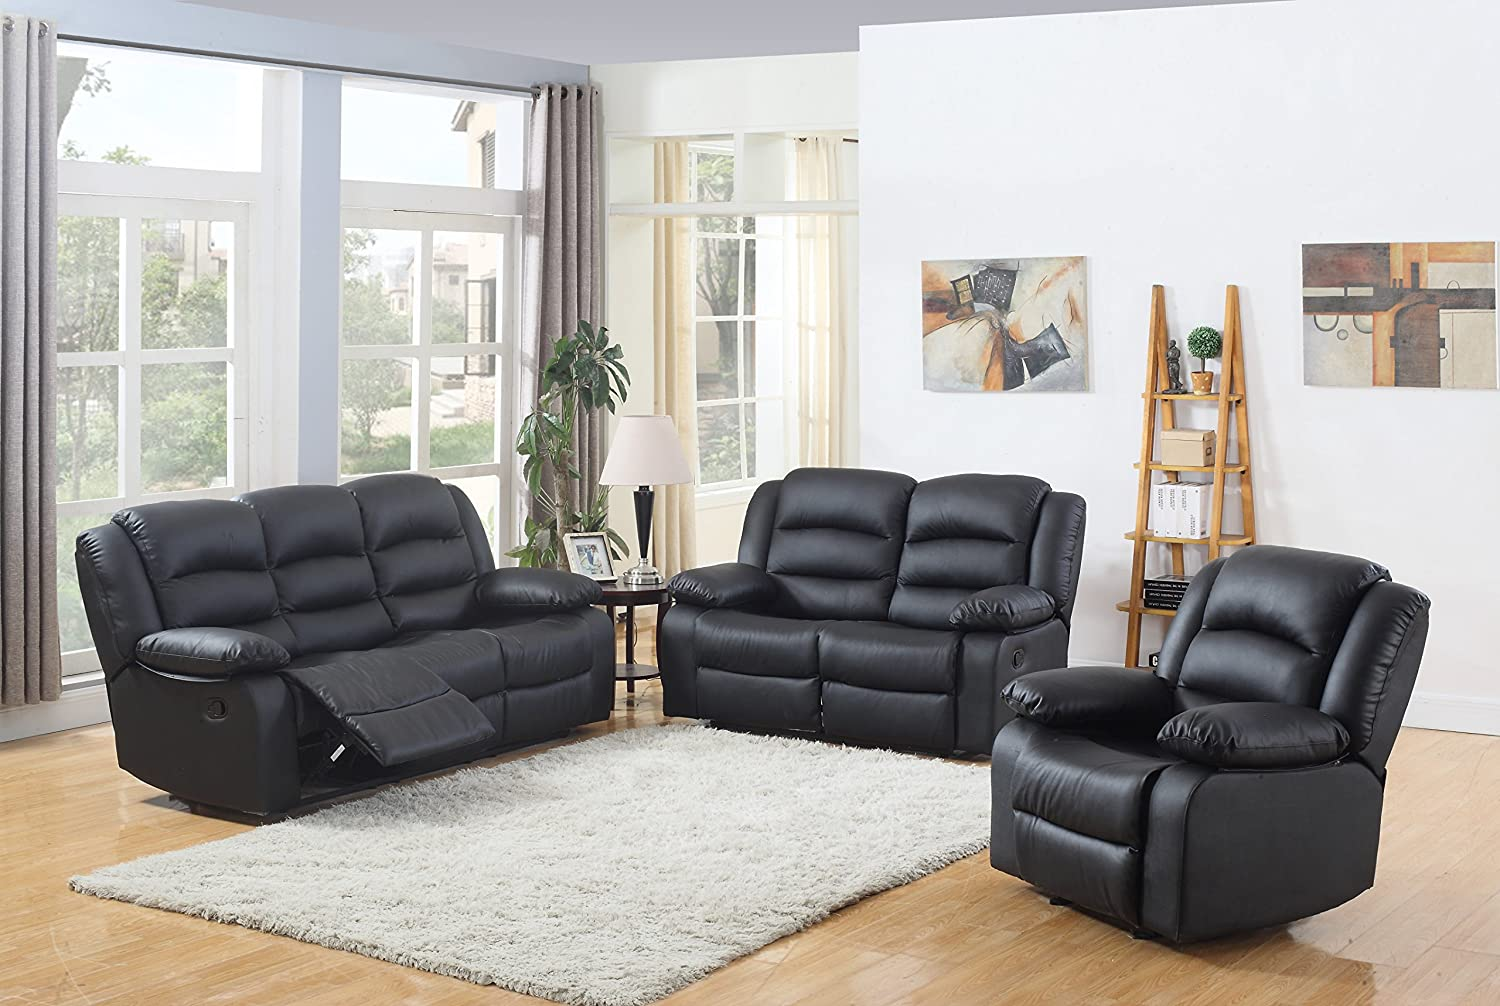 Amazon com classic and traditional black real grain leather recliner set sofa double recliner loveseat recliner single chair recliner kitchen dining